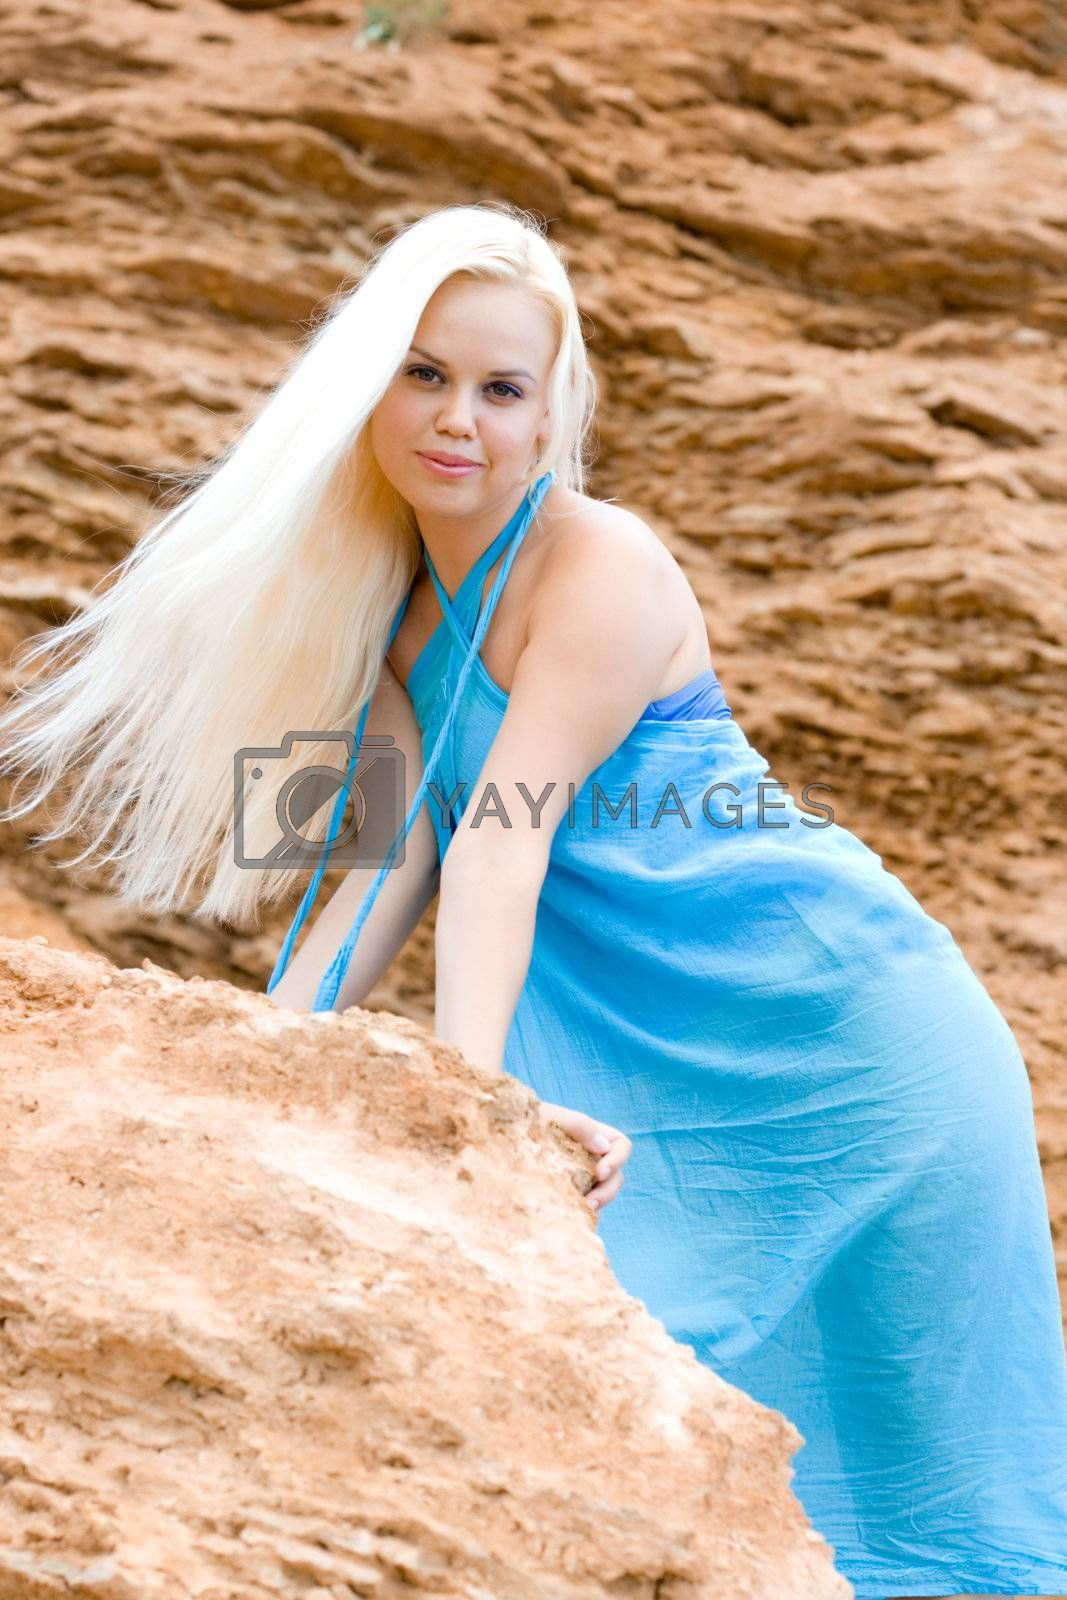 Royalty free image of blond woman among rocks by marylooo